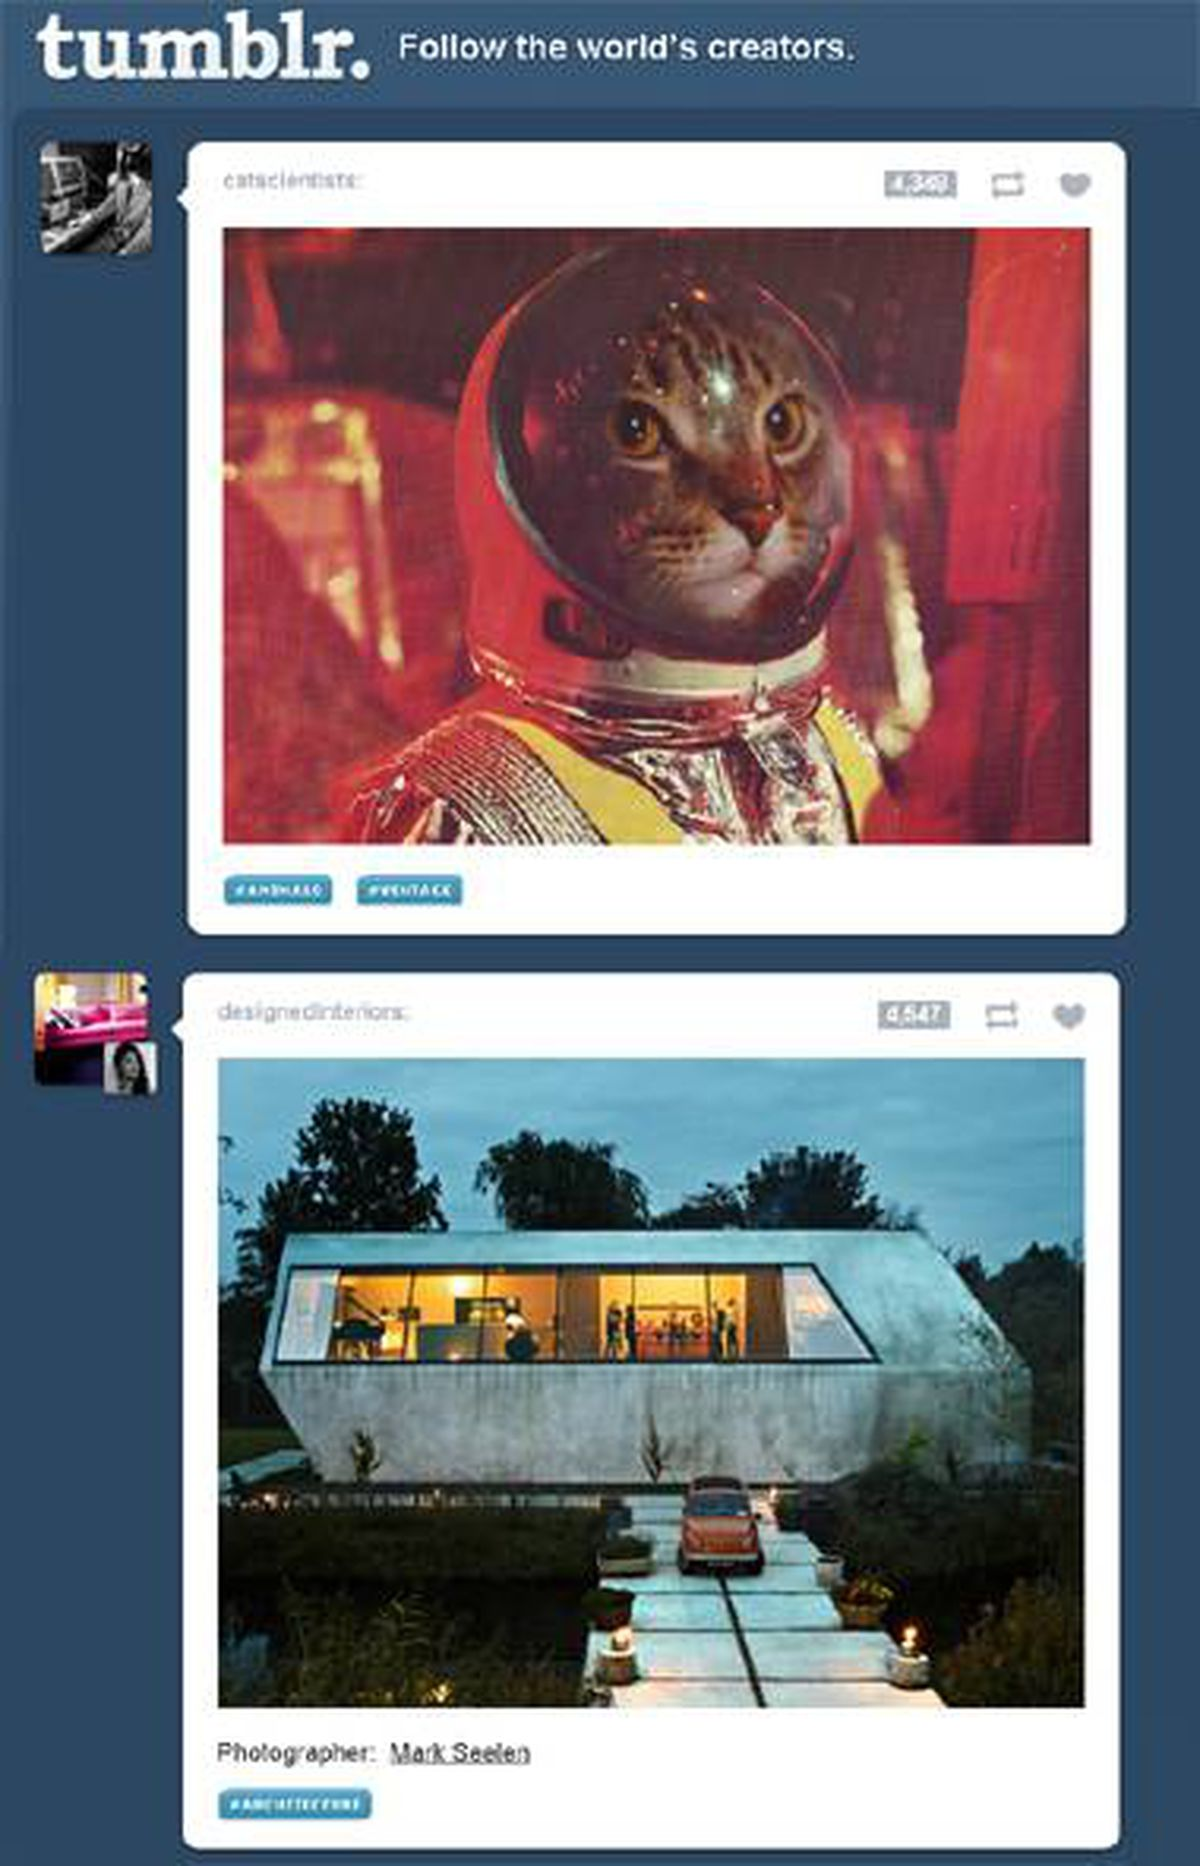 "TUMBLR WHAT: A blogging service that allows for mixed media posts, such as pictures with short captions. ""It's in the same space as Pinterest,"" said John Lilly of Greylock Partners, who worked on the $50-million funding round that Instagram wrapped up just before its sale to Facebook. ""But it's significantly bigger than Pinterest is on almost every single metric."" FUNDING: $125-million from Greylock, Sequoia and others. In September 2011, Tumblr was valued at $800-million. KEY FACT: High level of engagement, with users creating 14 original posts each month on average, Tumblr says. WHO: Founder David Karp, doing Harvard drop-outs like Facebook CEO Mark Zuckerberg one better, quit the Bronx High School of Science at age 15. Spark Capital and Union Square Capital were two of Tumblr's earliest investors, as they were at Twitter."